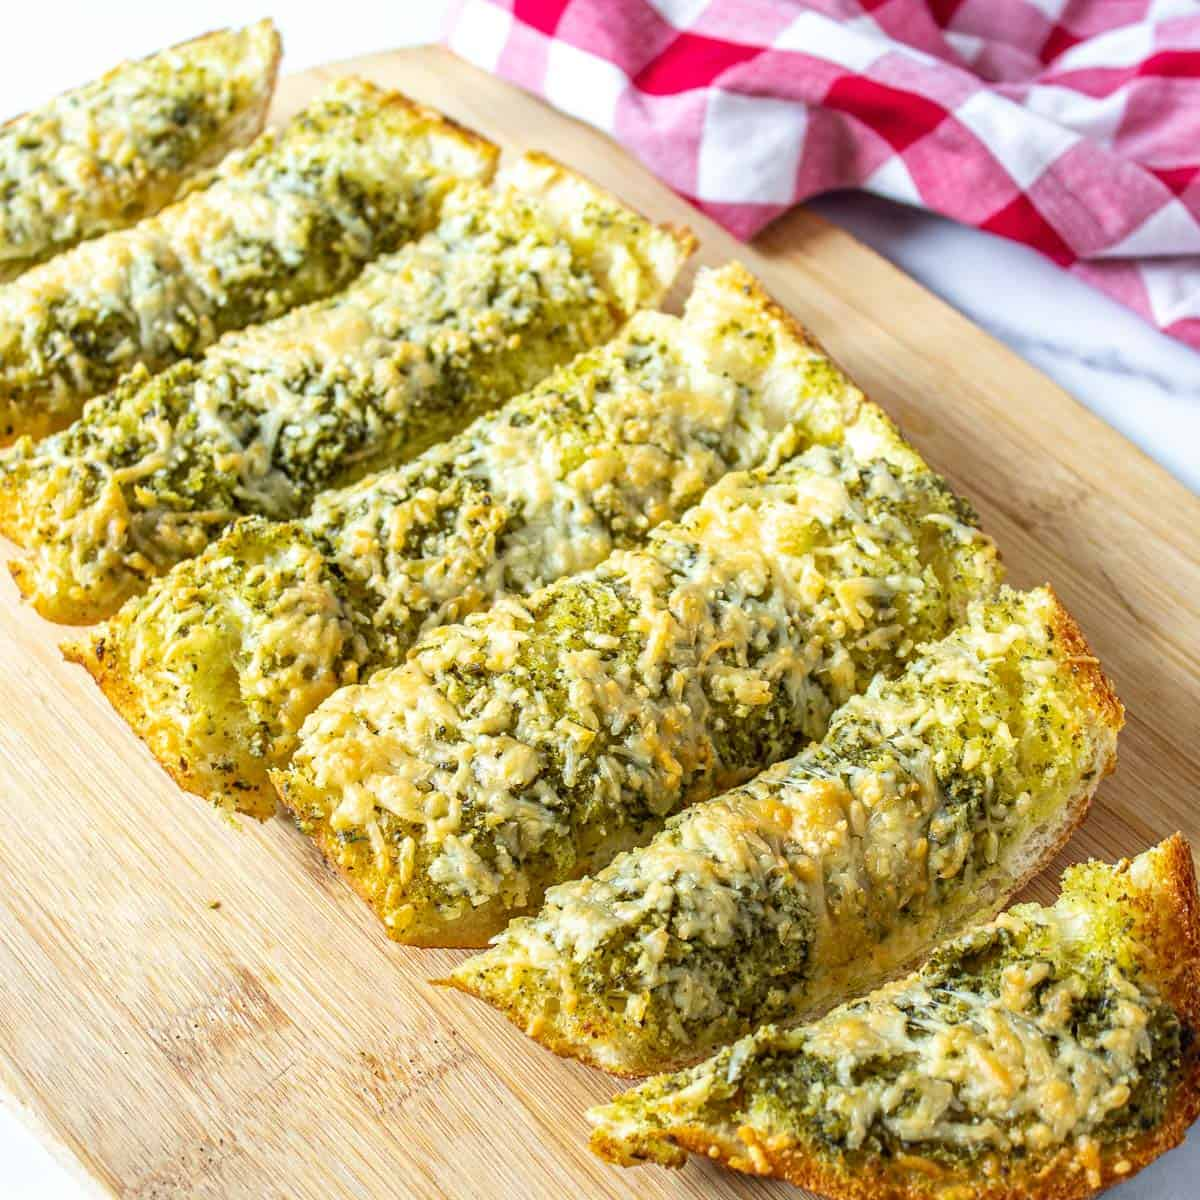 Slices of french bread topped with pesto and cheese.